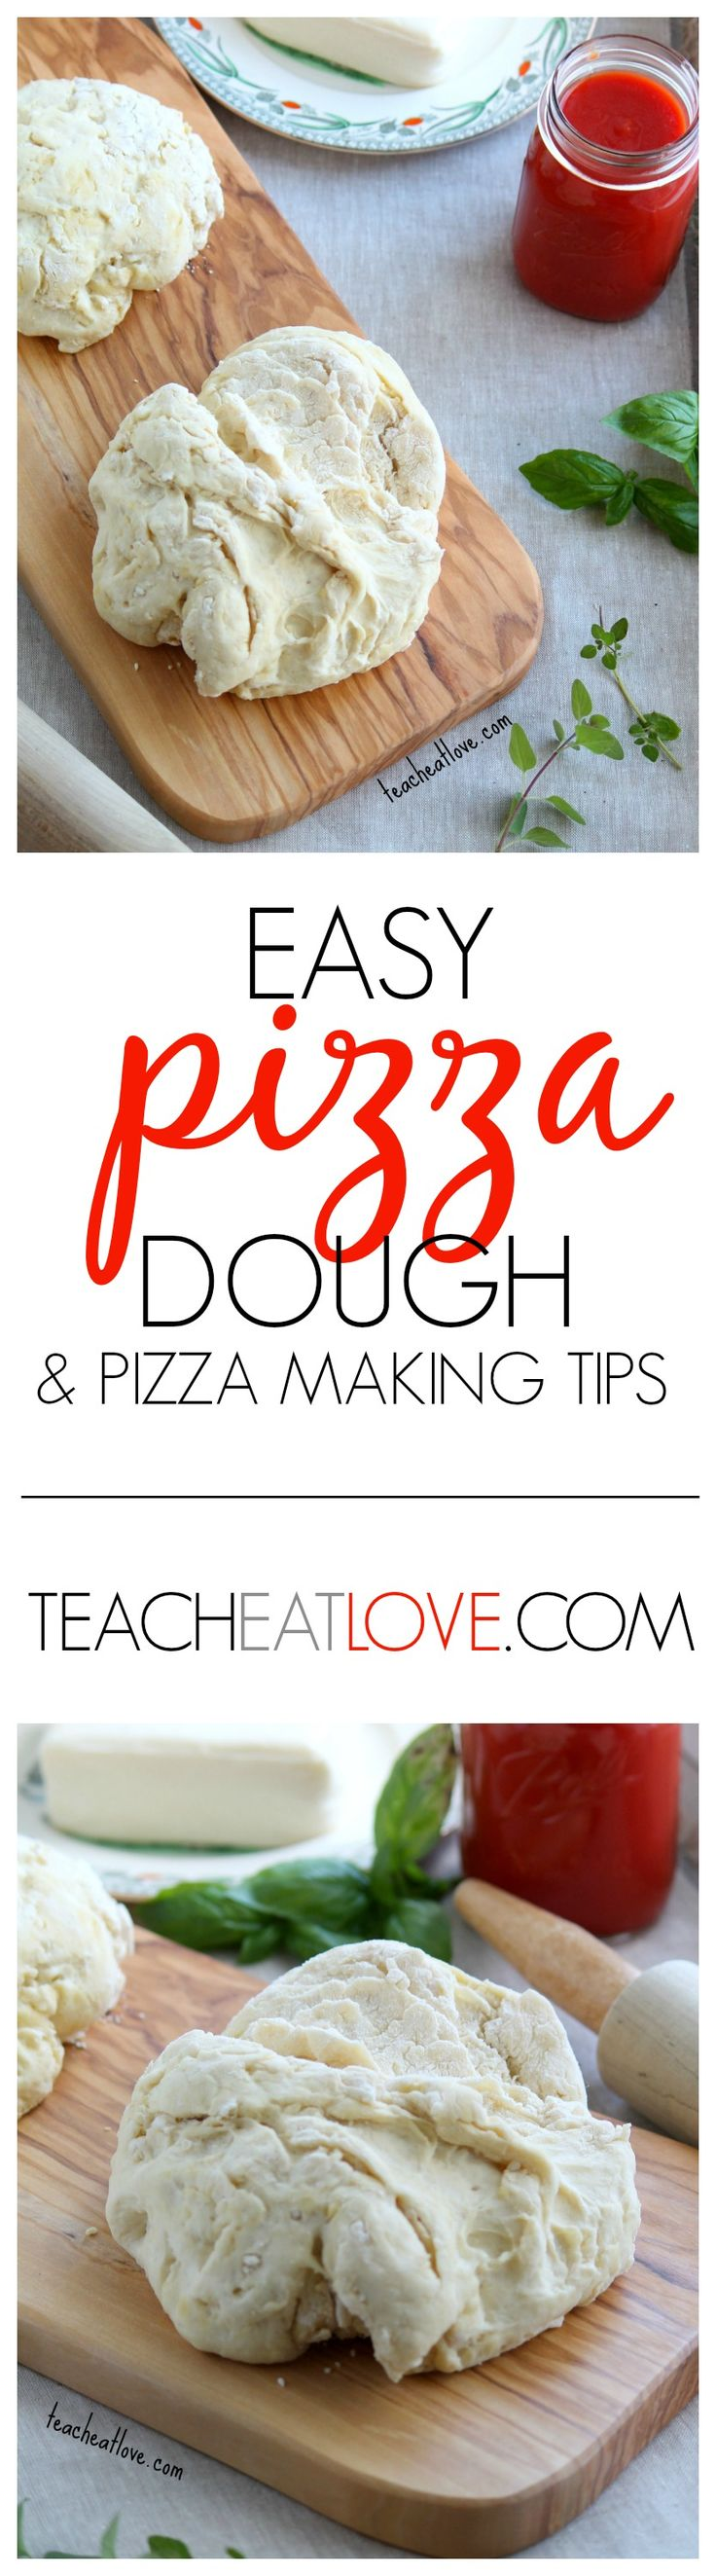 Easy dough recipe and helpful tips for perfect pizza at home. www.teacheatlove.com